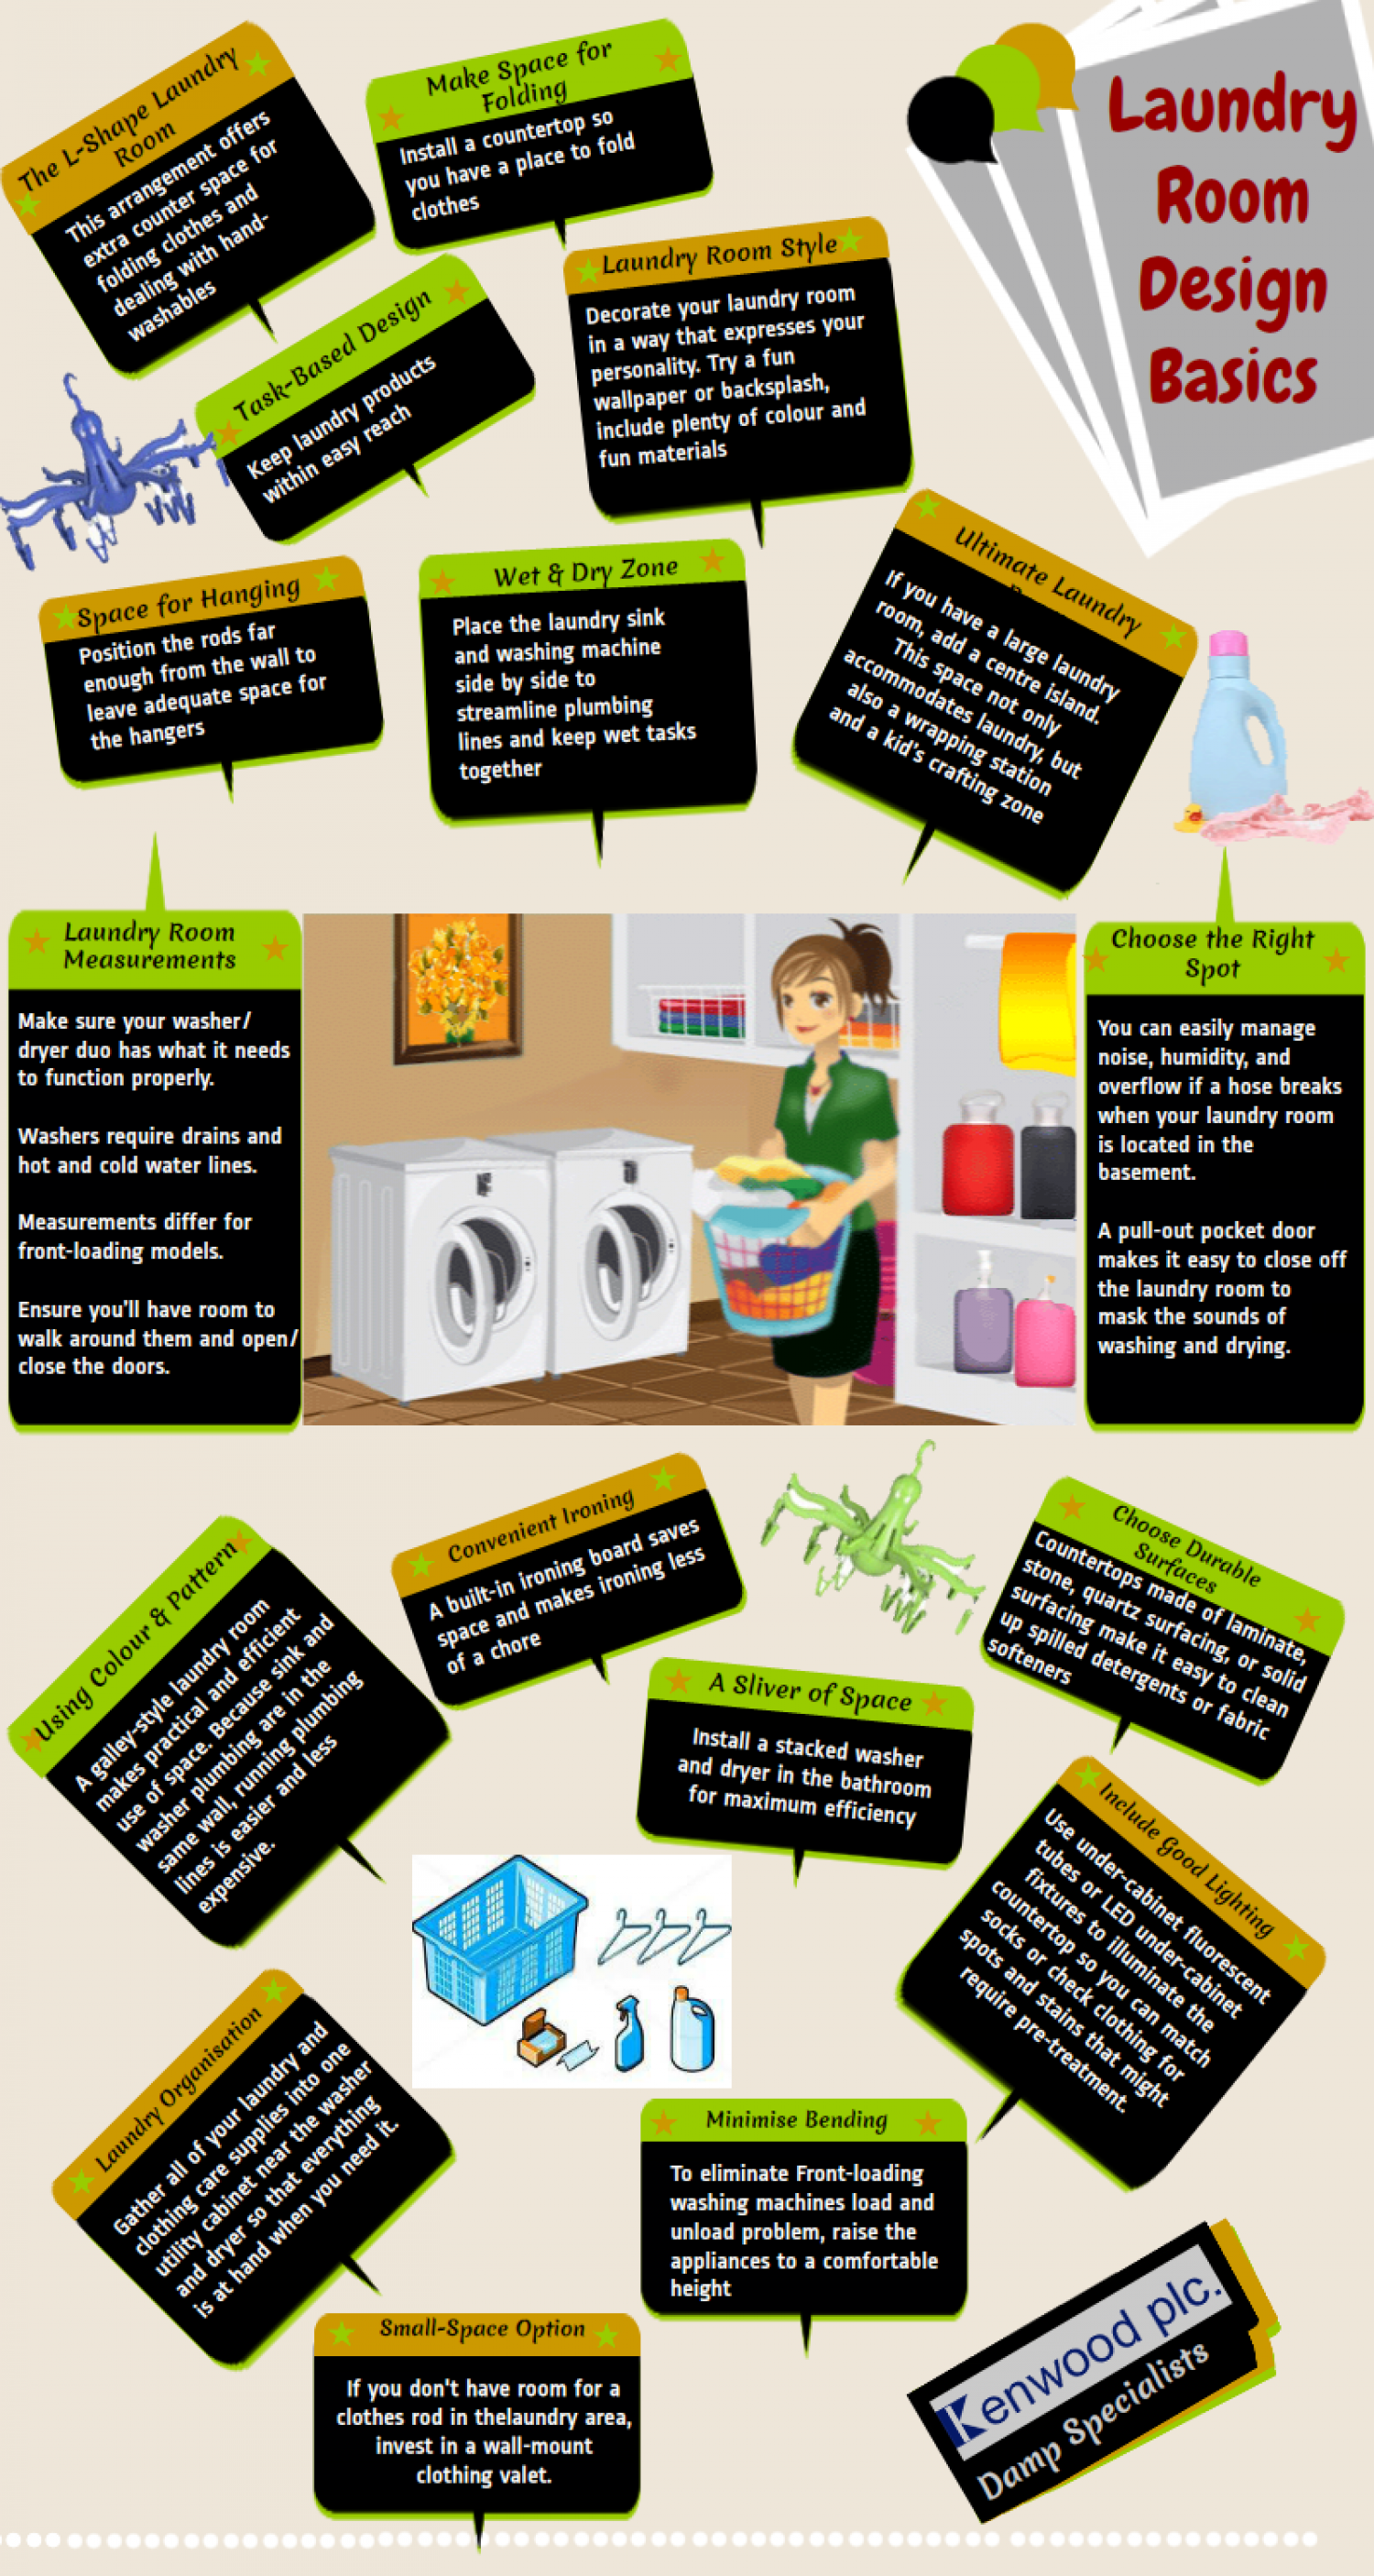 Laundry Room Design Basics Infographic